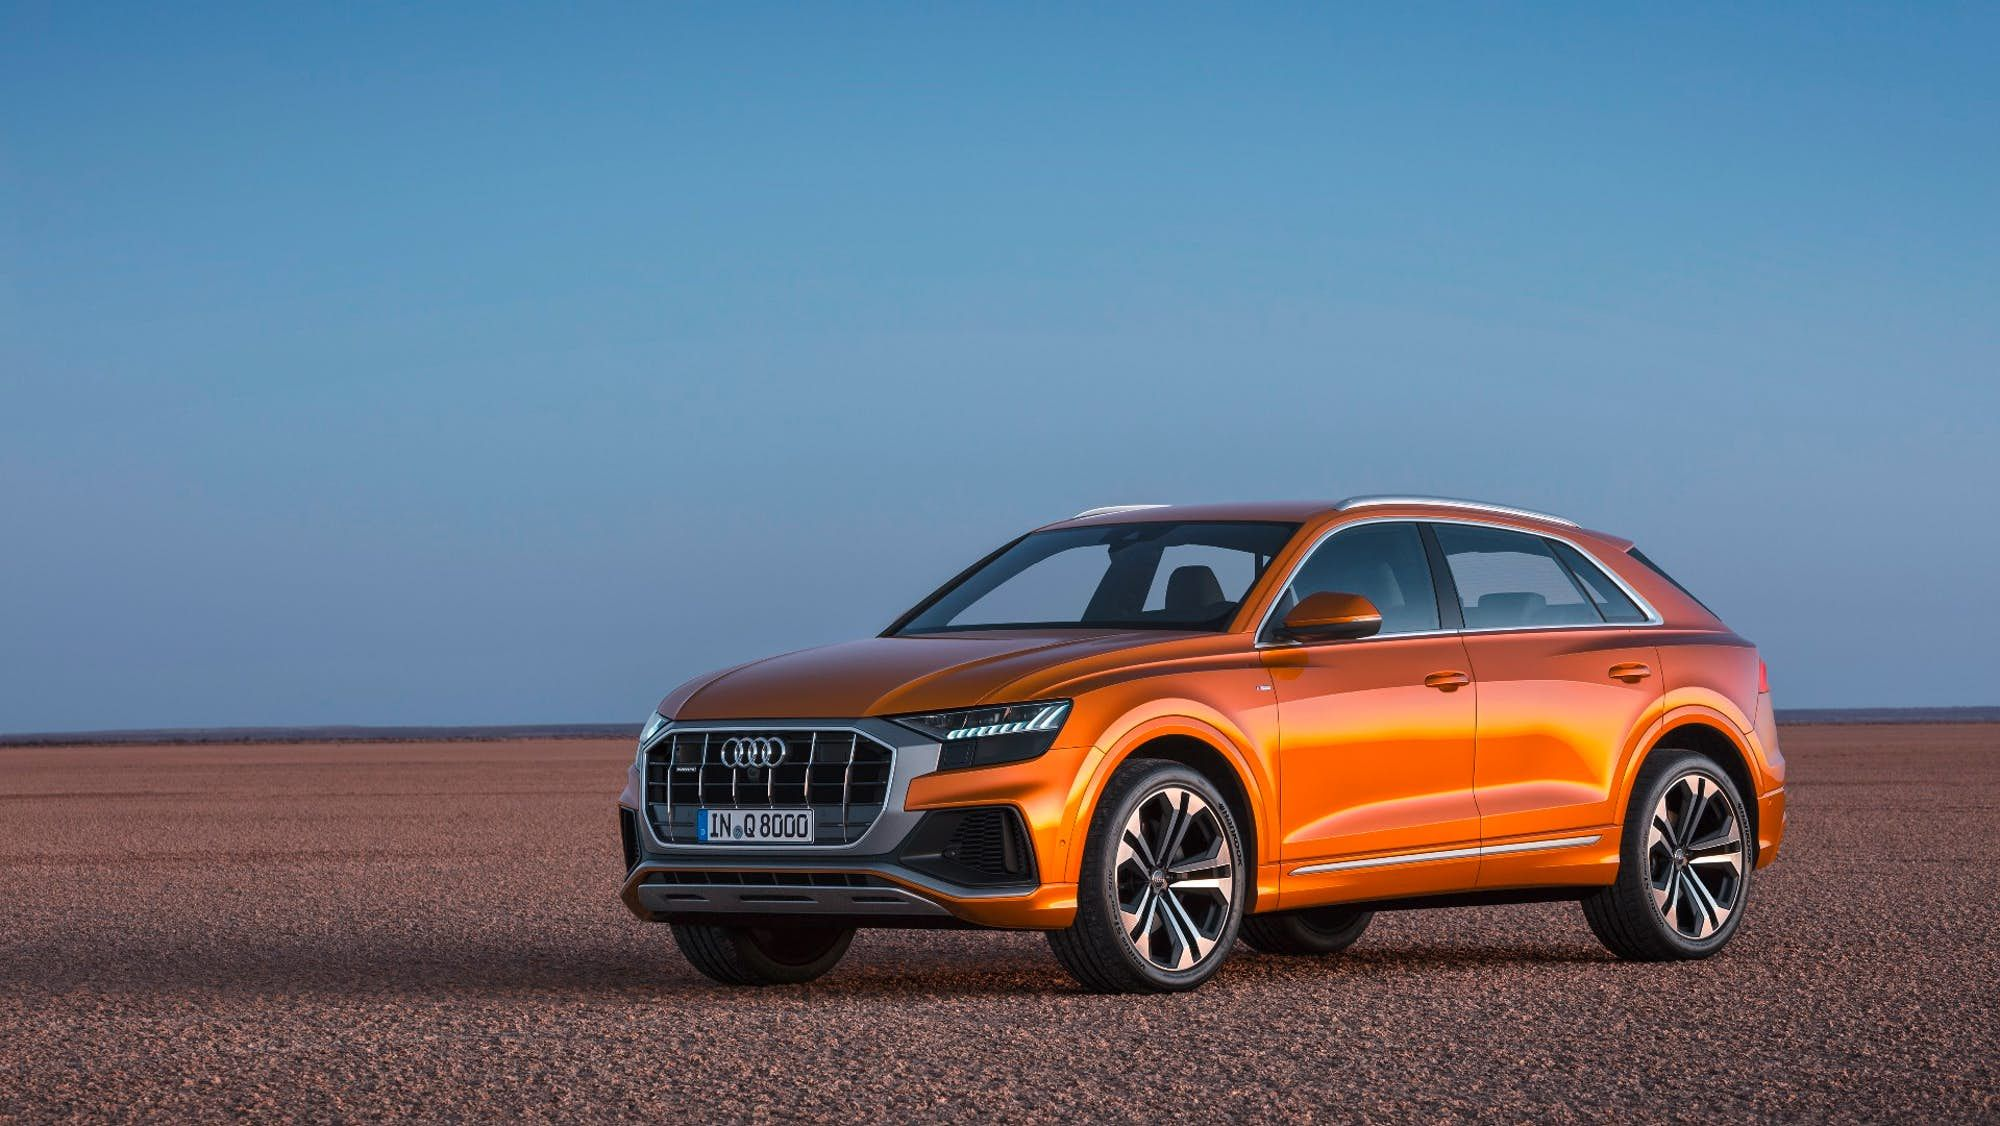 Audi Tops Its Suv Range With New Q8 Audi Audi Suv Audi Sportback